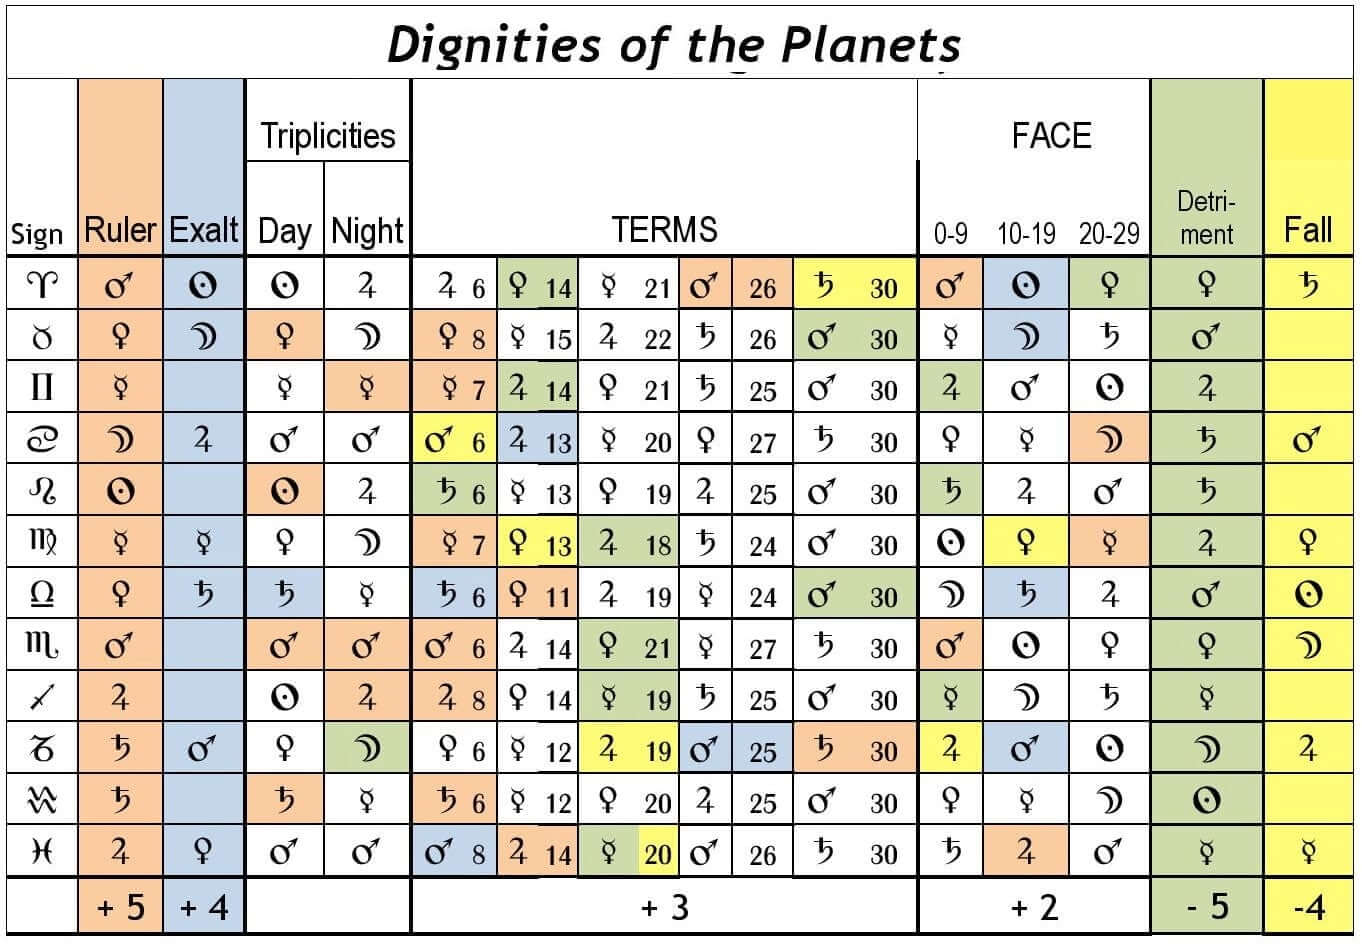 Planetary Dignities Sun Signs